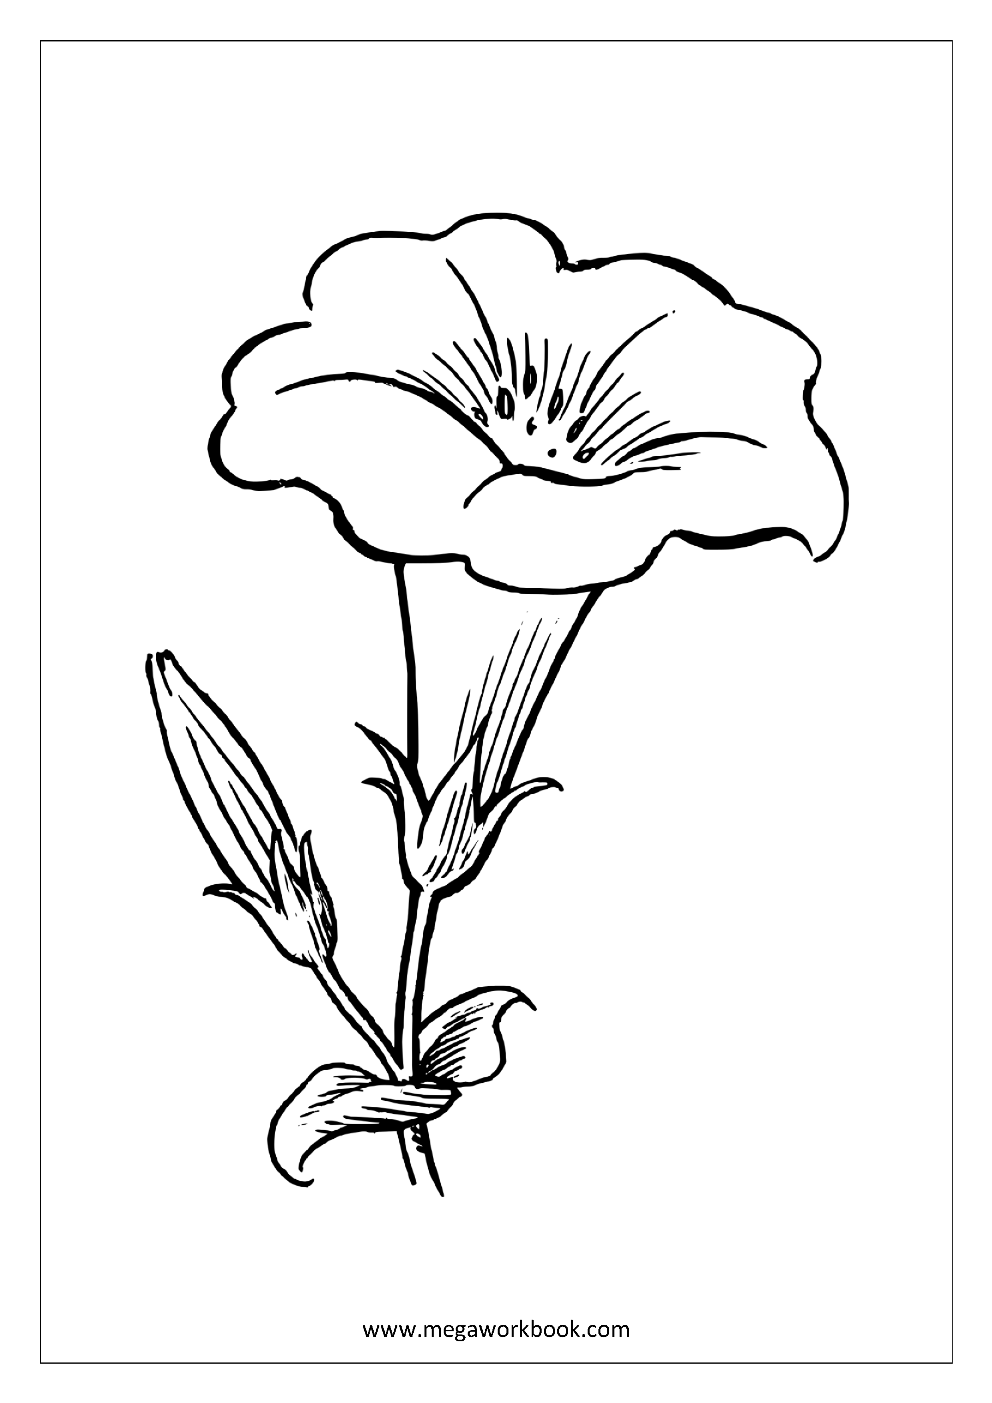 Flower Coloring Pages - Plant & Tree Coloring Pages - Leaf ...